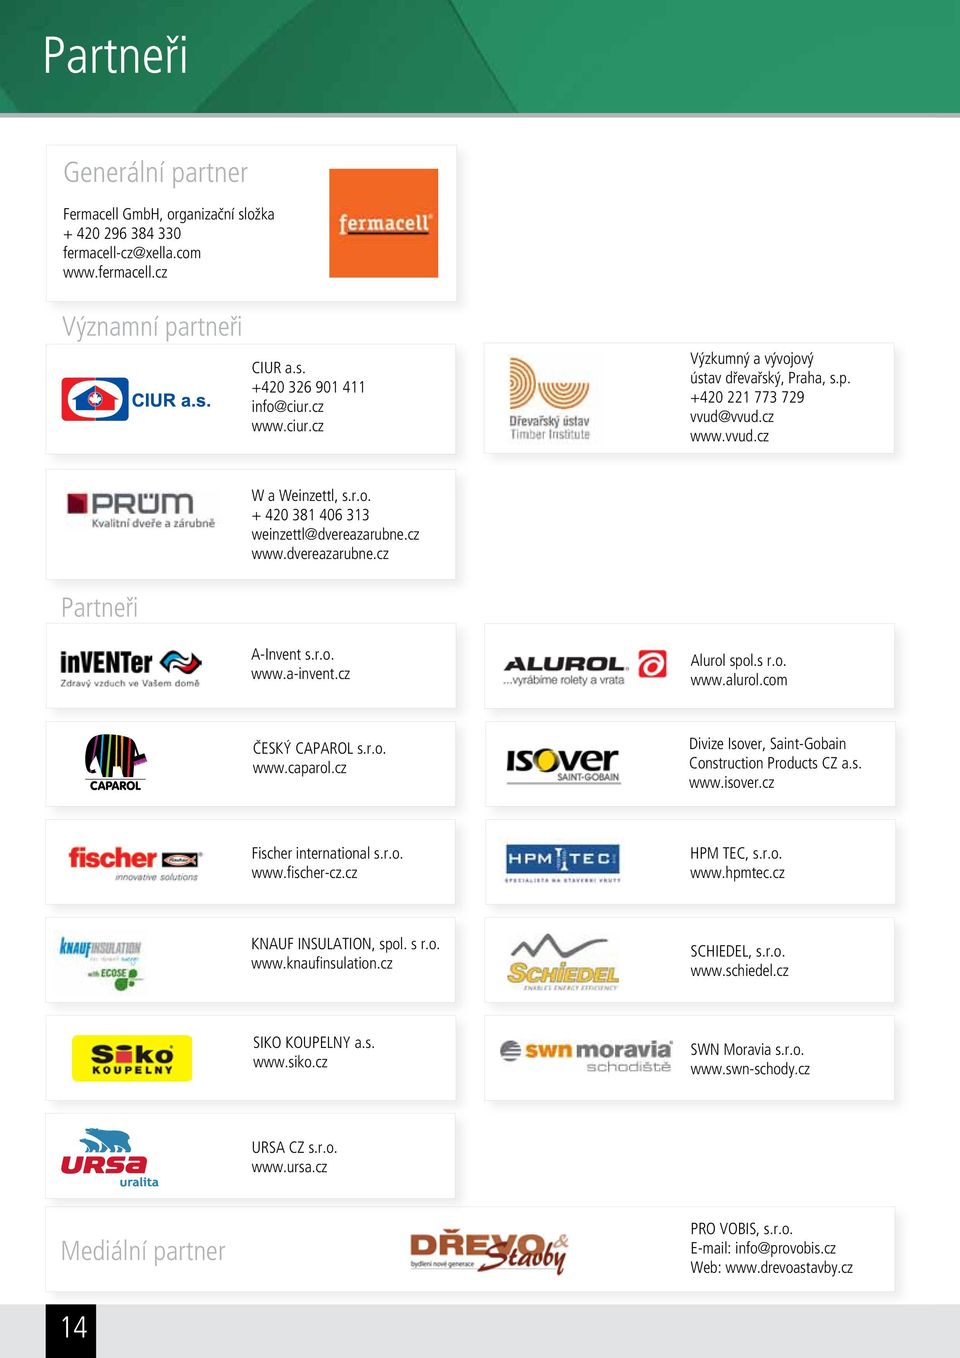 r.o. www.a-invent.cz Alurol spol.s r.o. www.alurol.com ČESKÝ CAPAROL s.r.o. www.caparol.cz Divize Isover, Saint-Gobain Construction Products CZ a.s. www.isover.cz Fischer international s.r.o. www.fischer-cz.